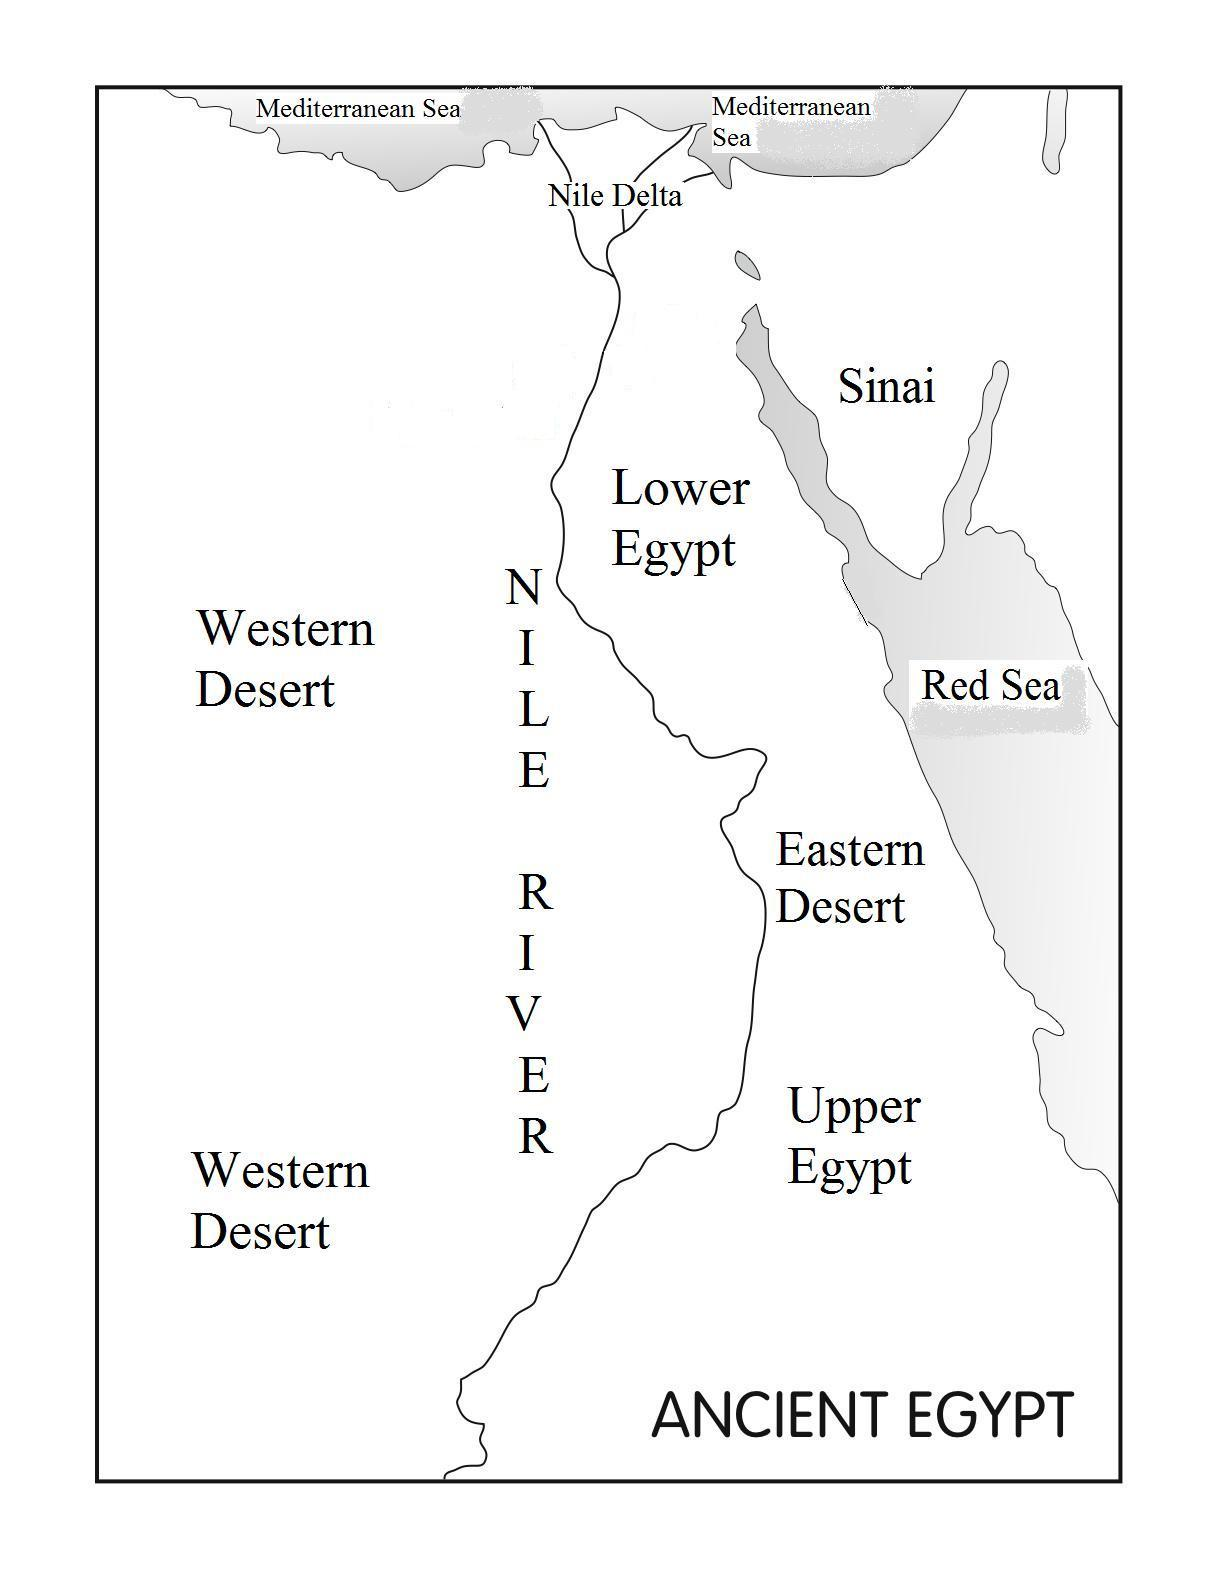 Nile River Valley Project Egypt On Physical Map - Egypt physical map